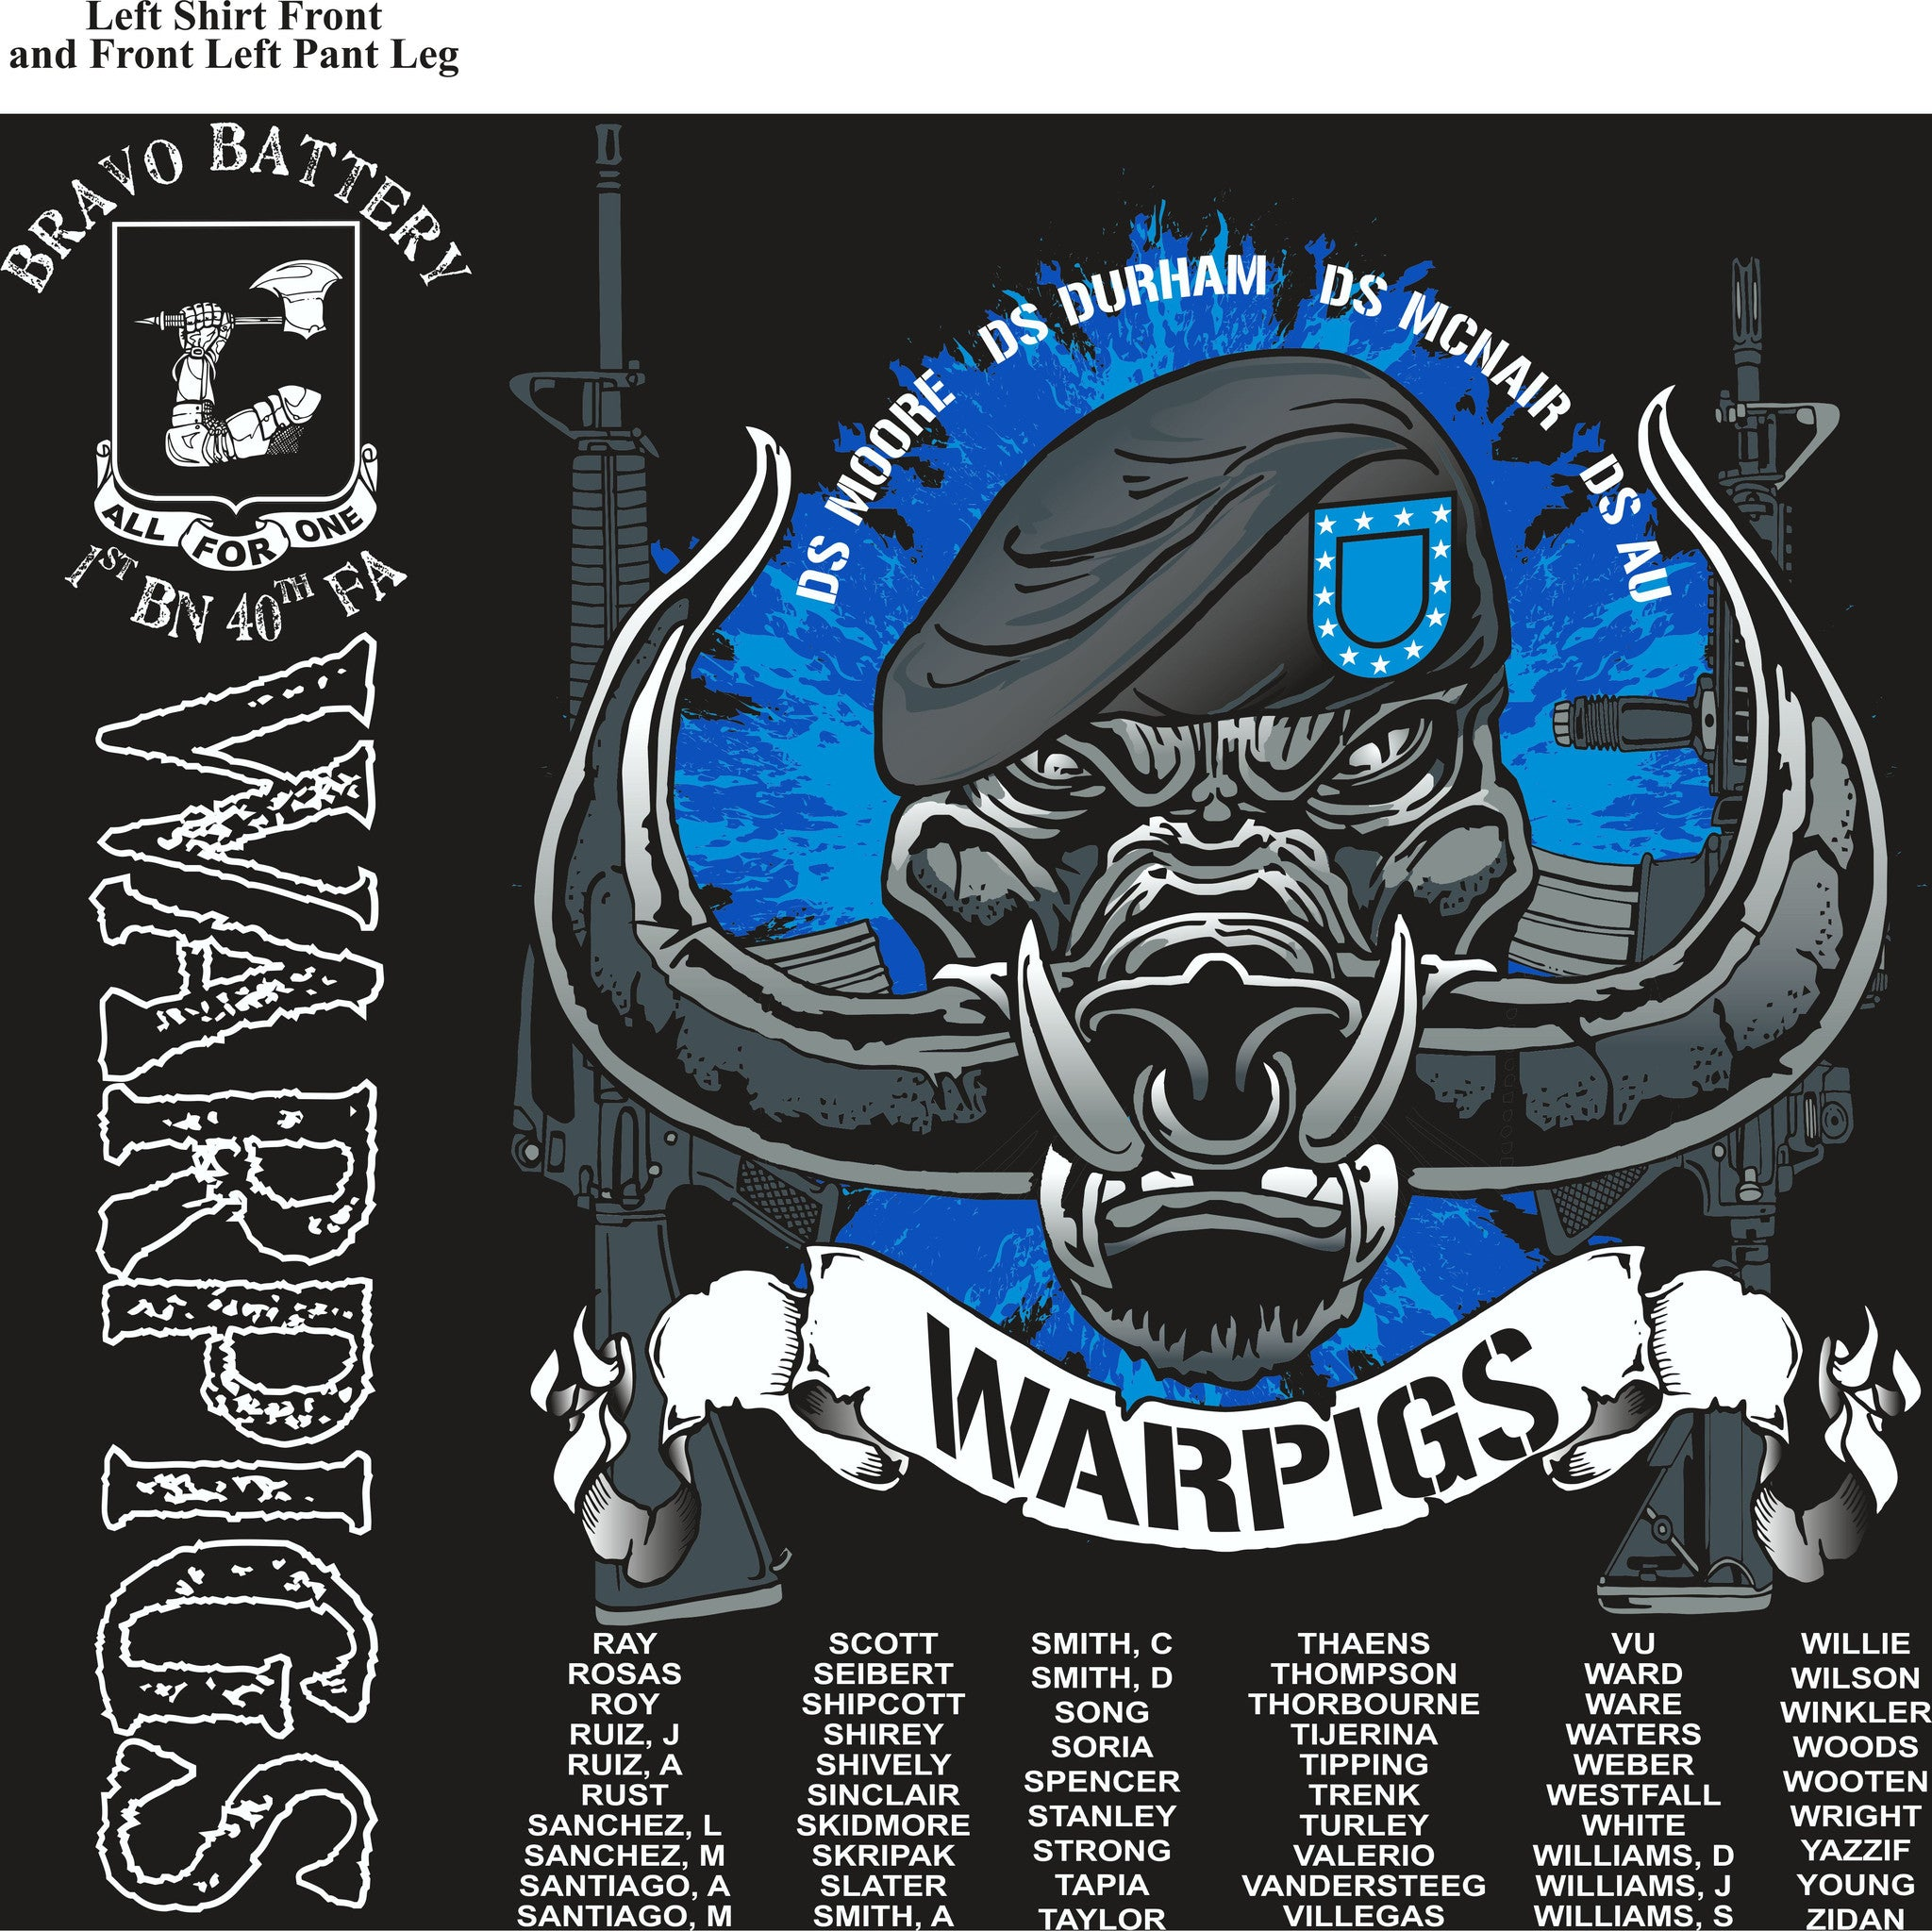 PLATOON SHIRTS (2nd generation print) BRAVO 1st 40th WARPIGS OCT 2016